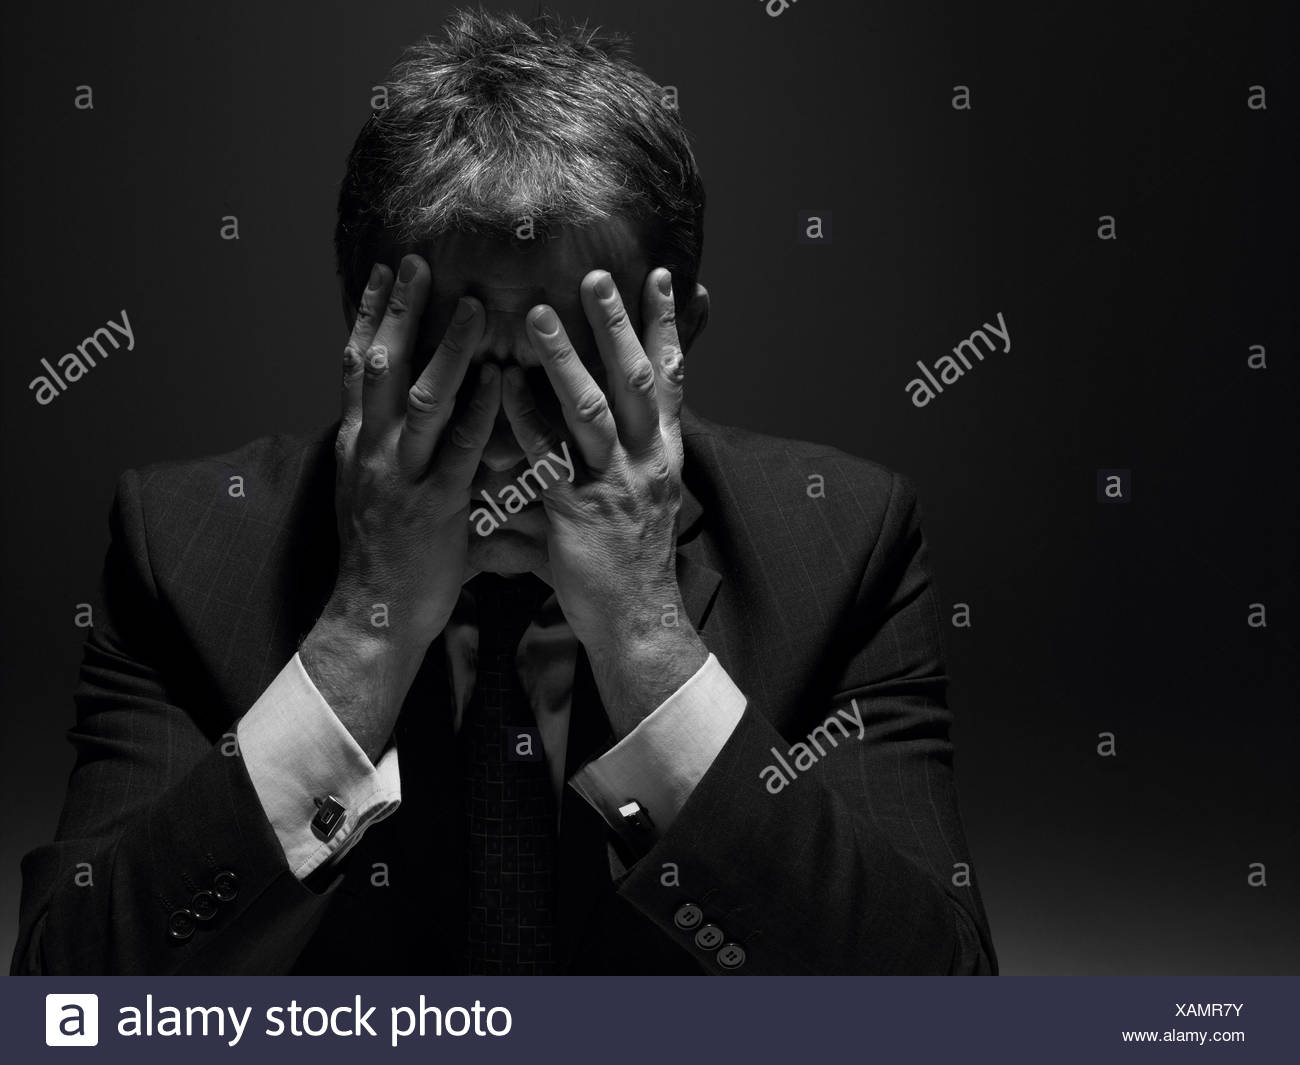 doubts,worry,stress,struggle,businessman,burnout - Stock Image